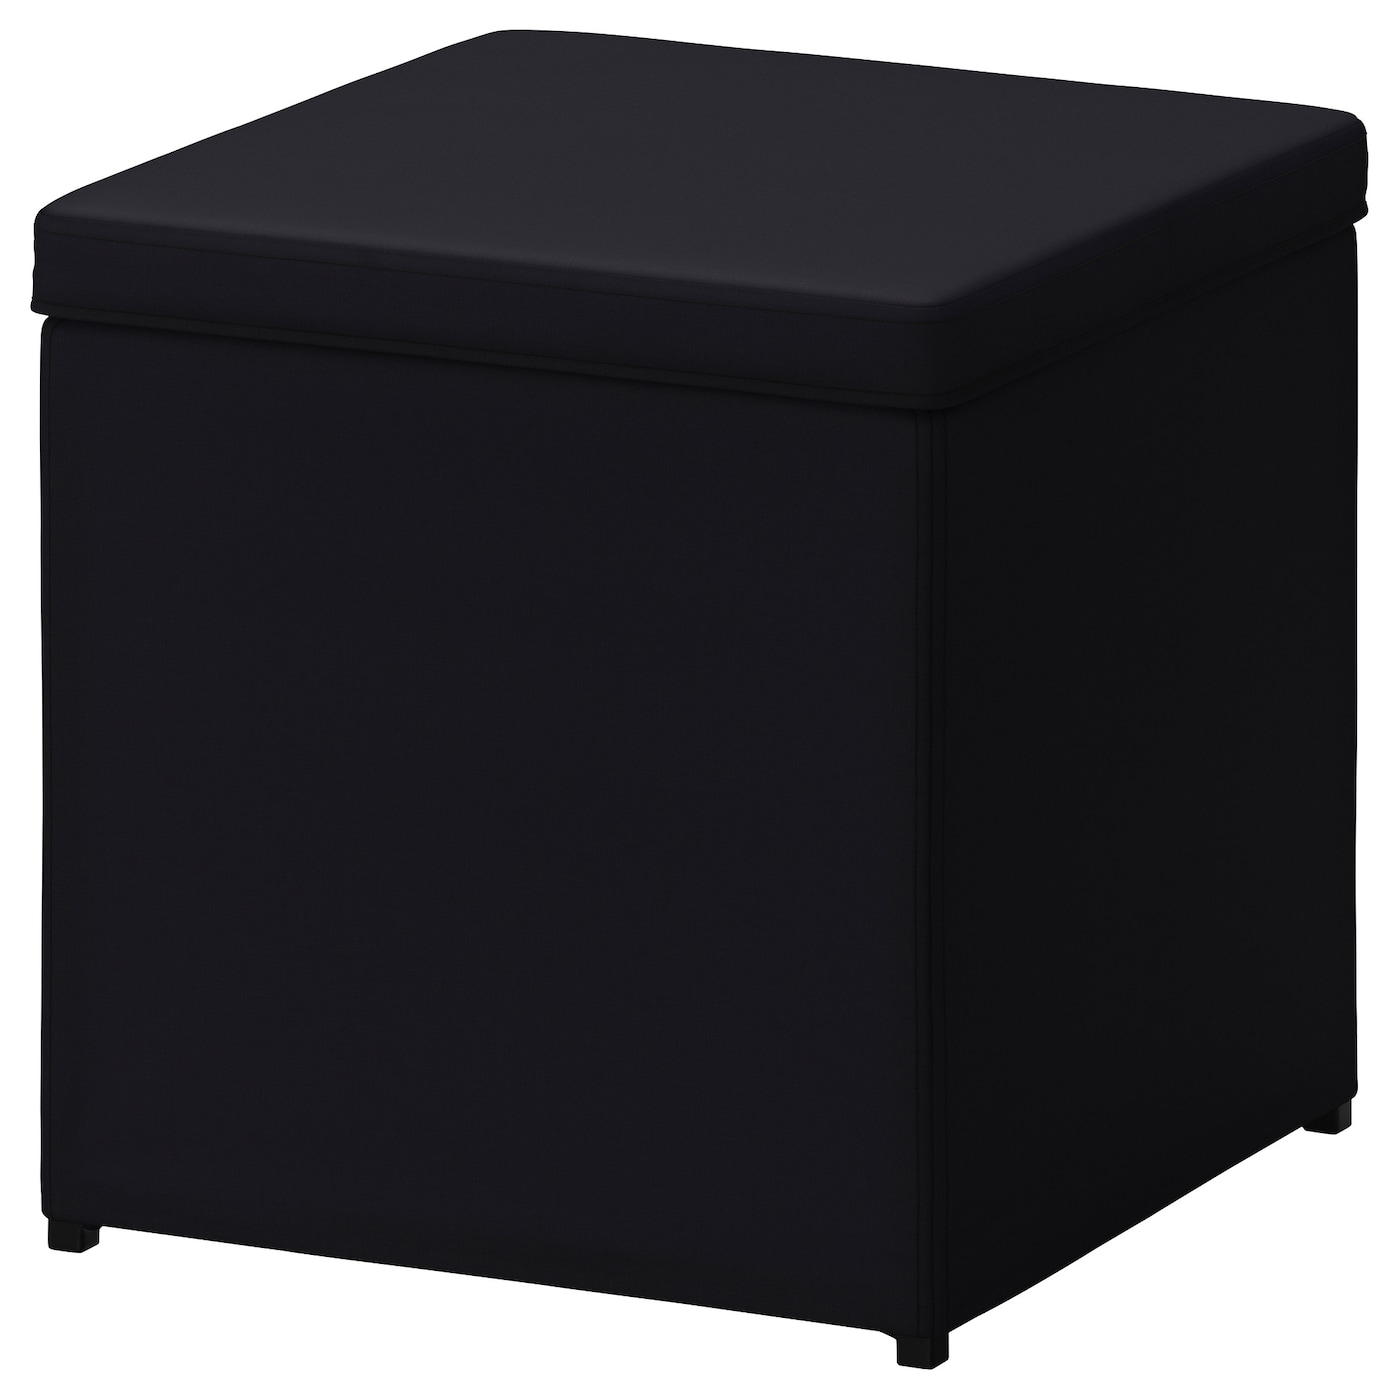 bosn s repose pieds av rangement ransta noir ikea. Black Bedroom Furniture Sets. Home Design Ideas